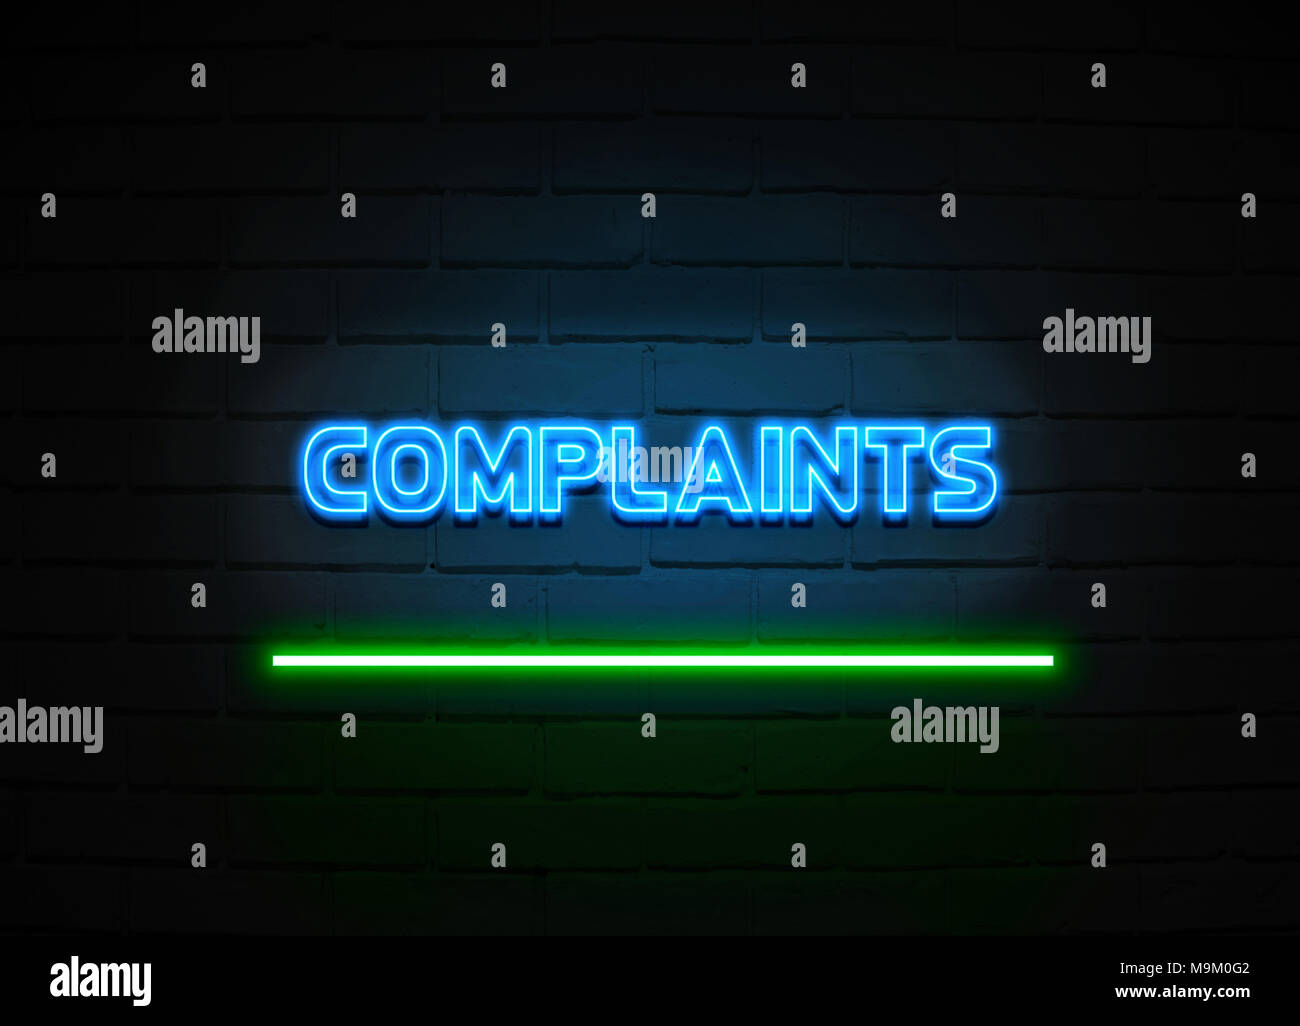 Complaints neon sign - Glowing Neon Sign on brickwall wall - 3D rendered royalty free stock illustration. - Stock Image